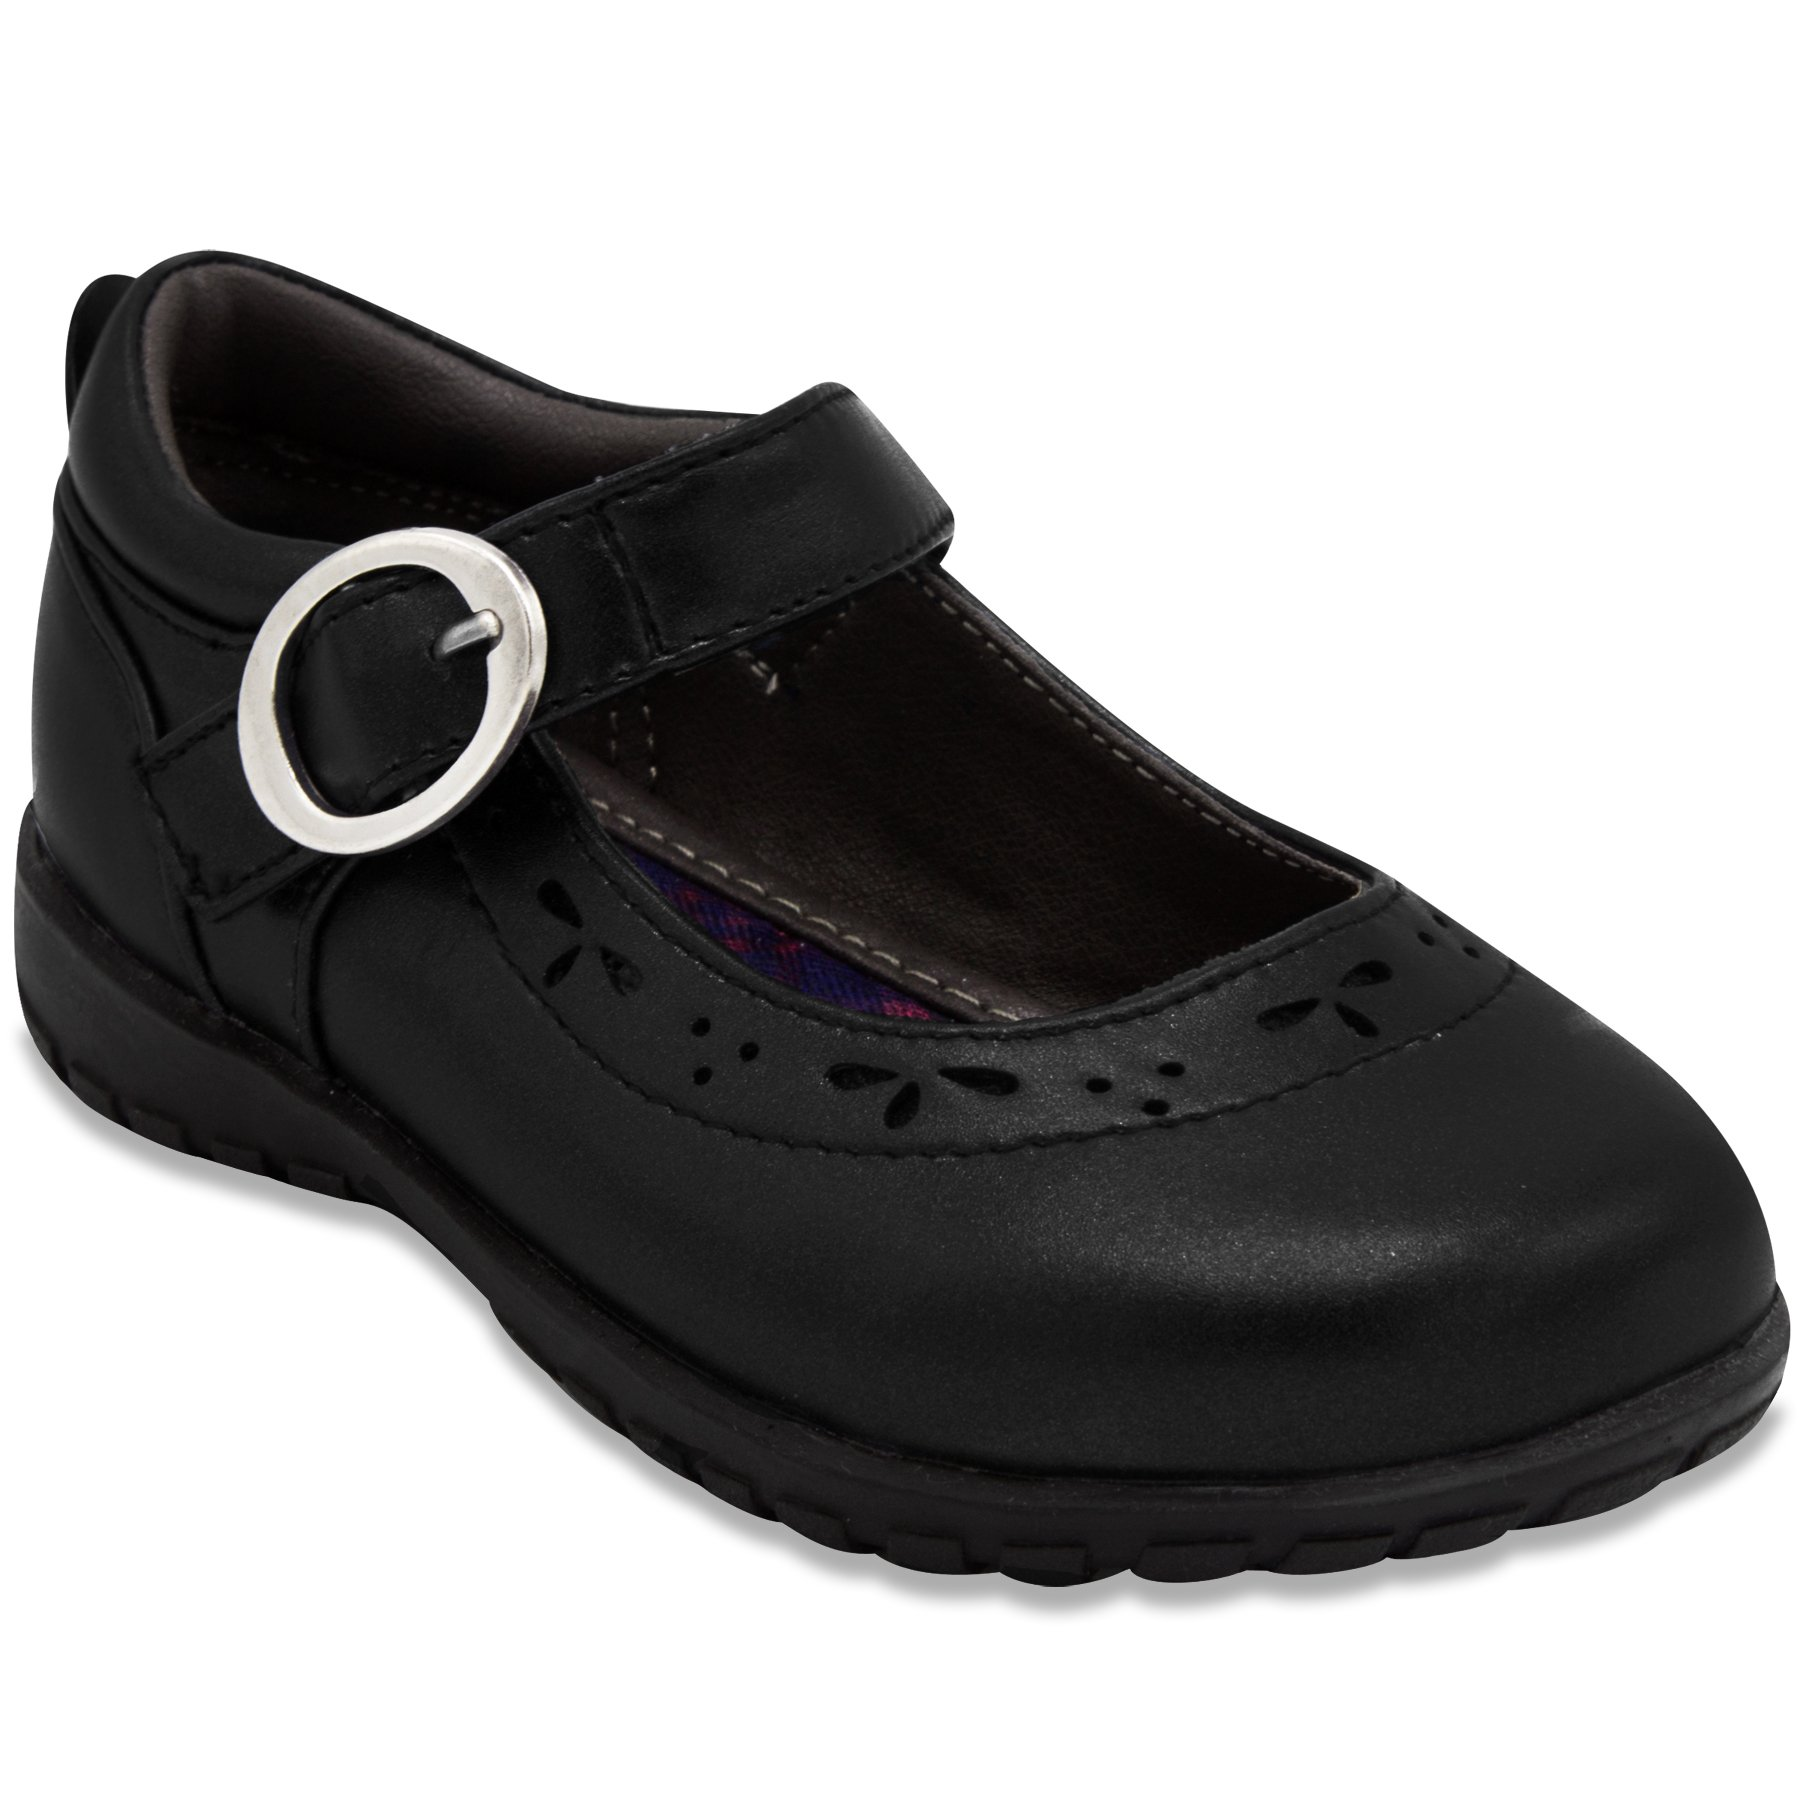 French Toast Girls Gina Flat Mary Jane Oxford School Uniform 9 Black